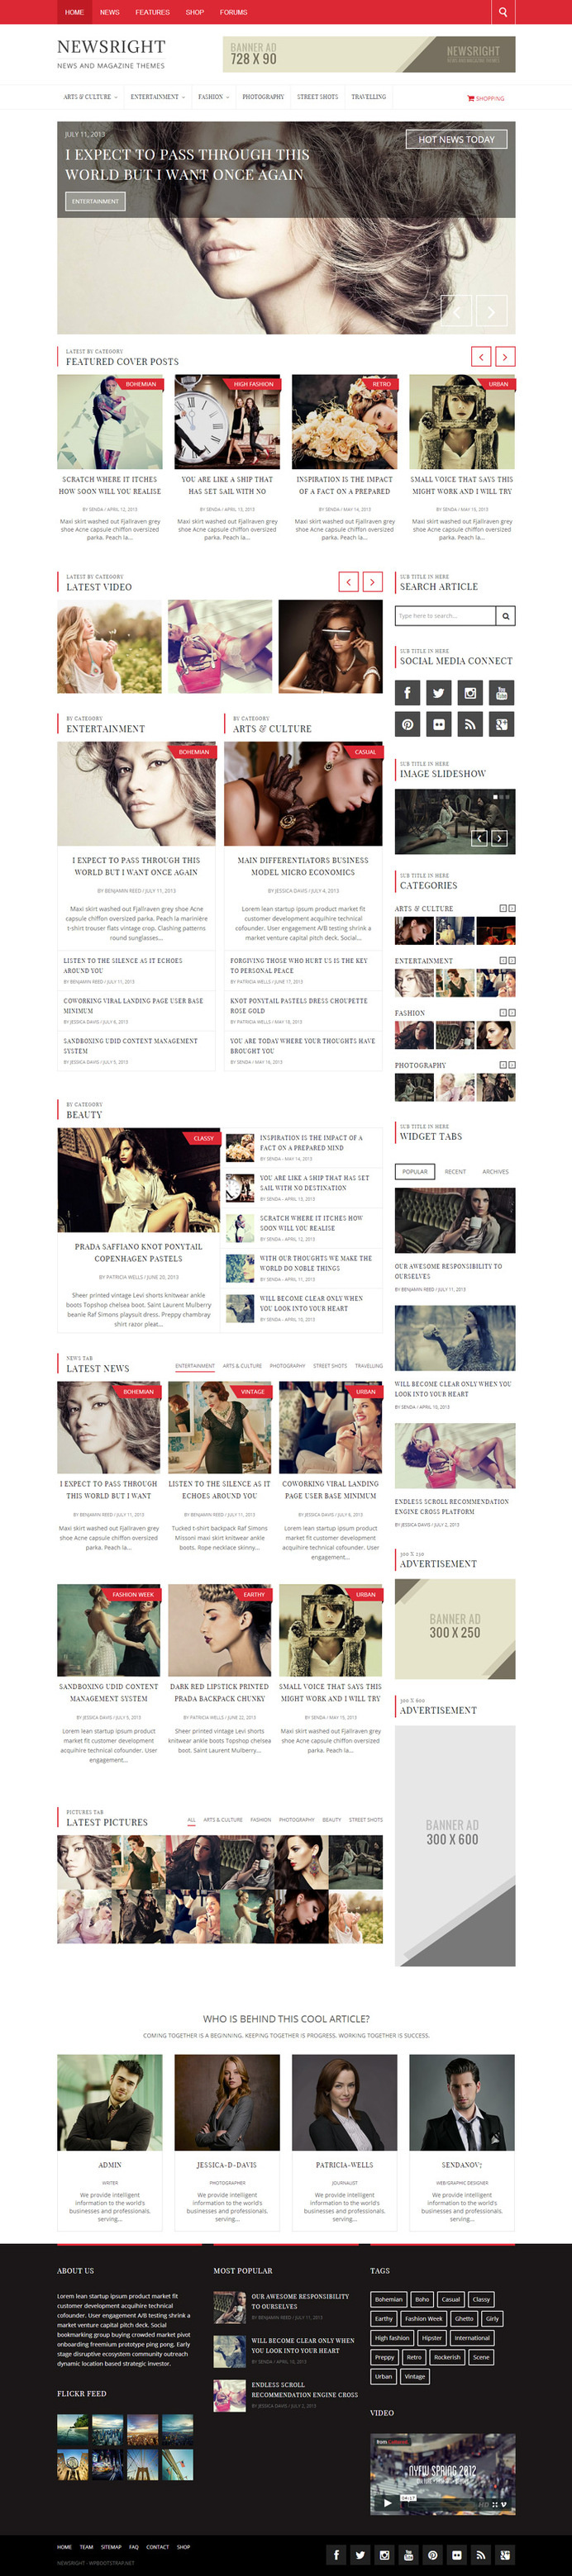 fashion, red, layout, concept #red #design #concept #fashion #layout #web #magazine